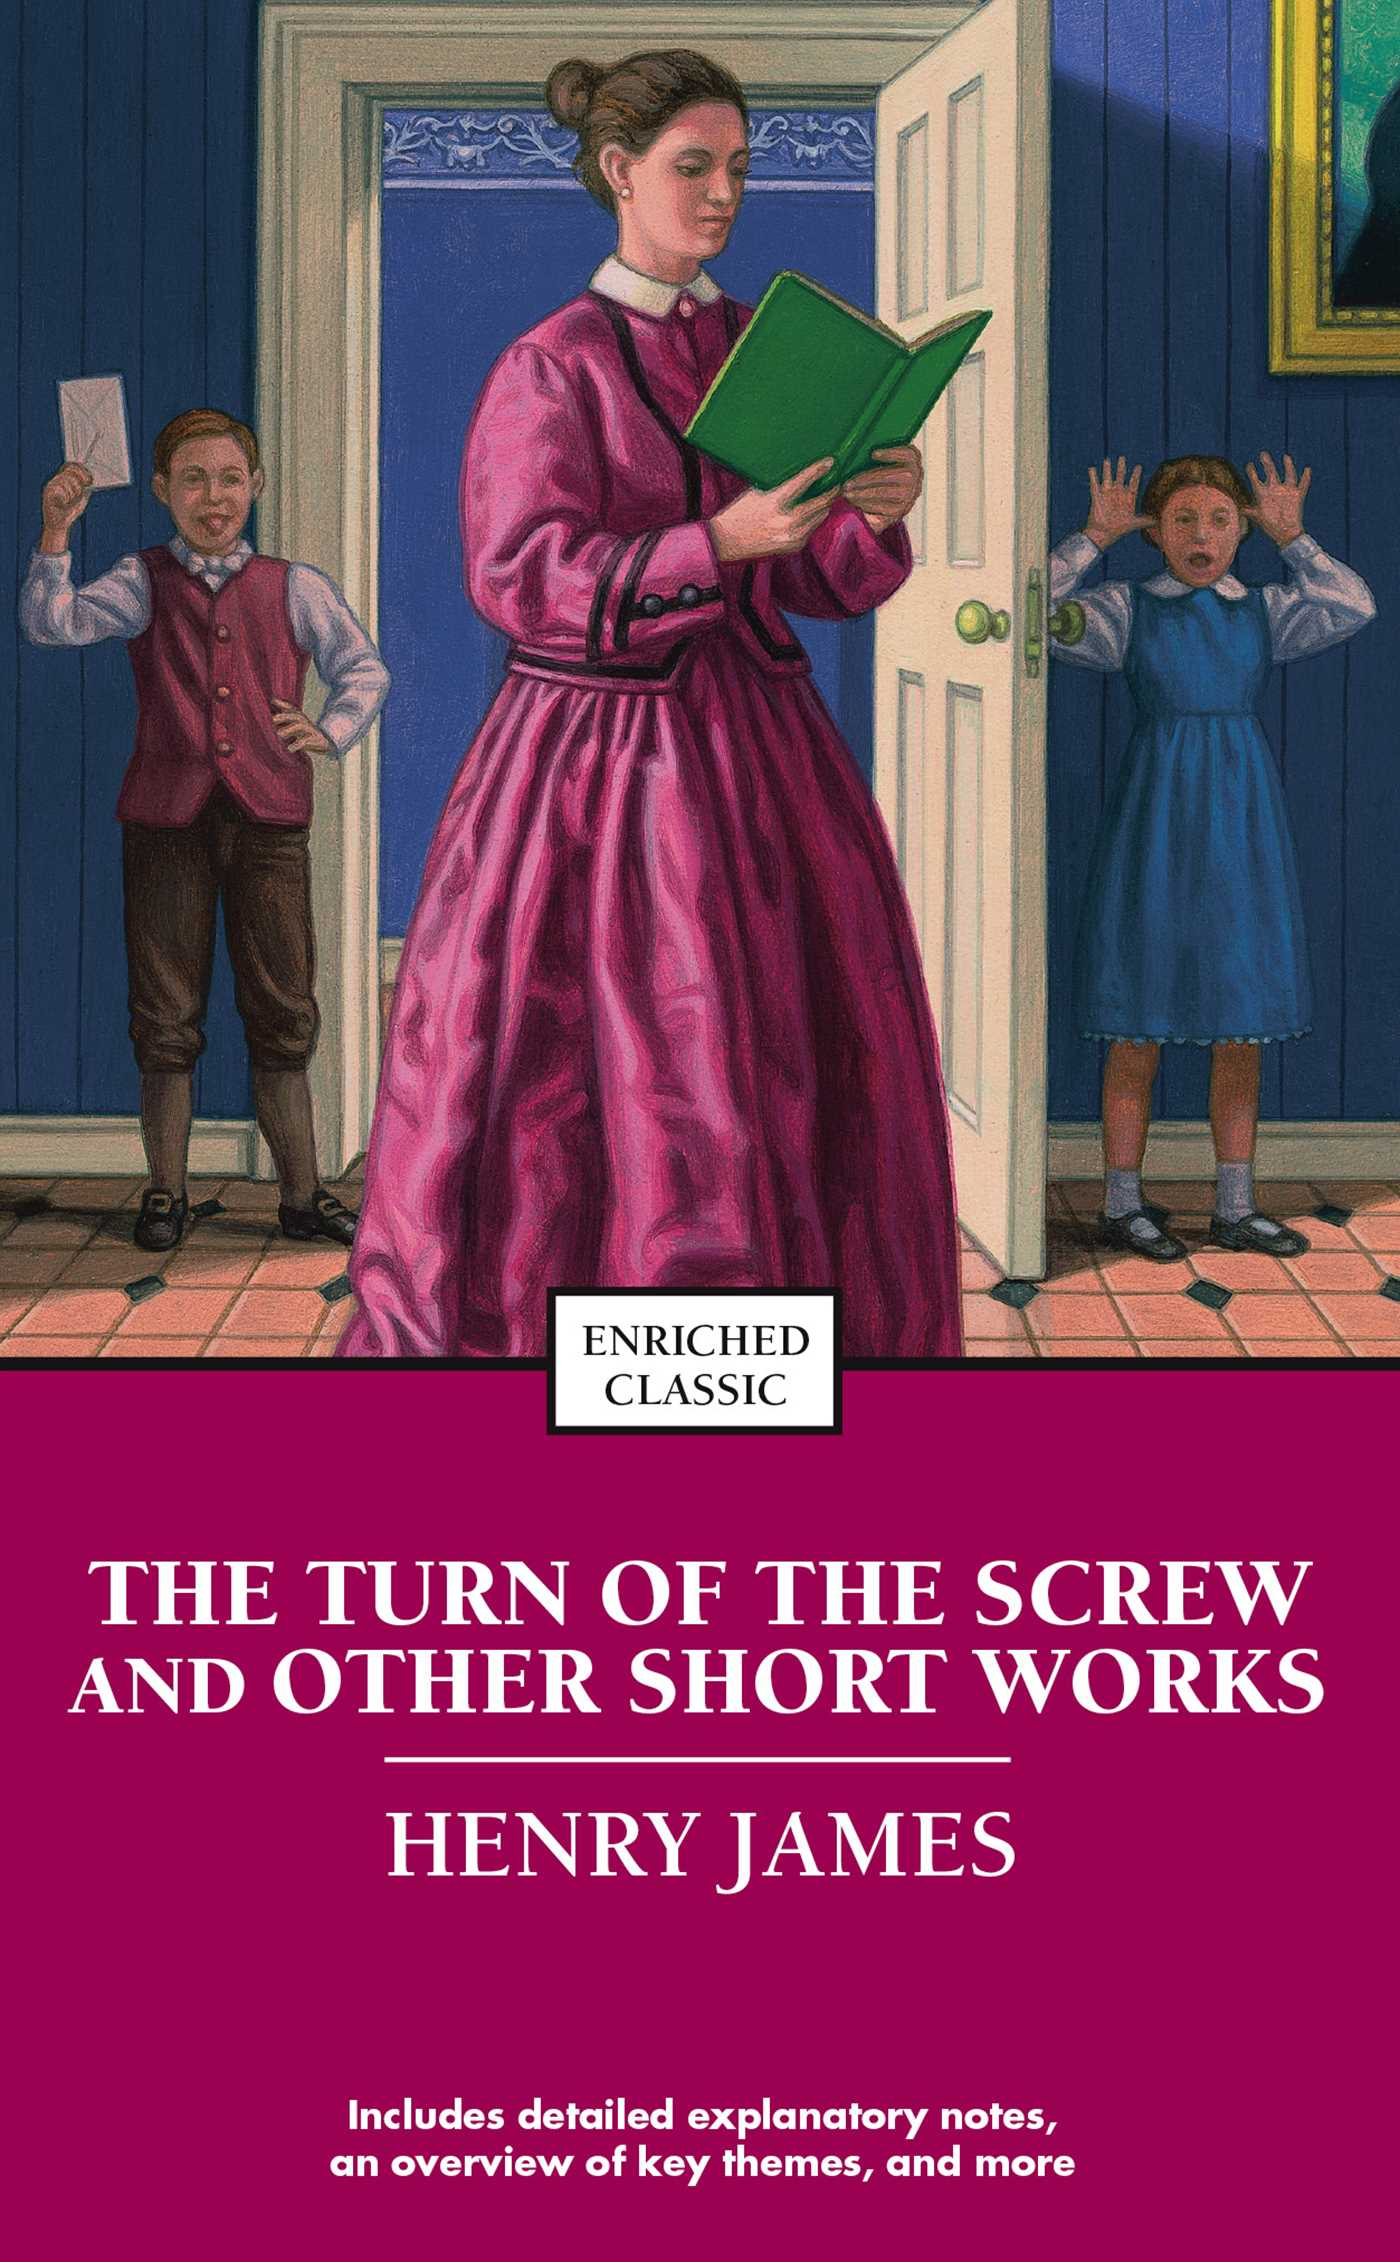 The turn of the screw and other short works 9781451686340 hr